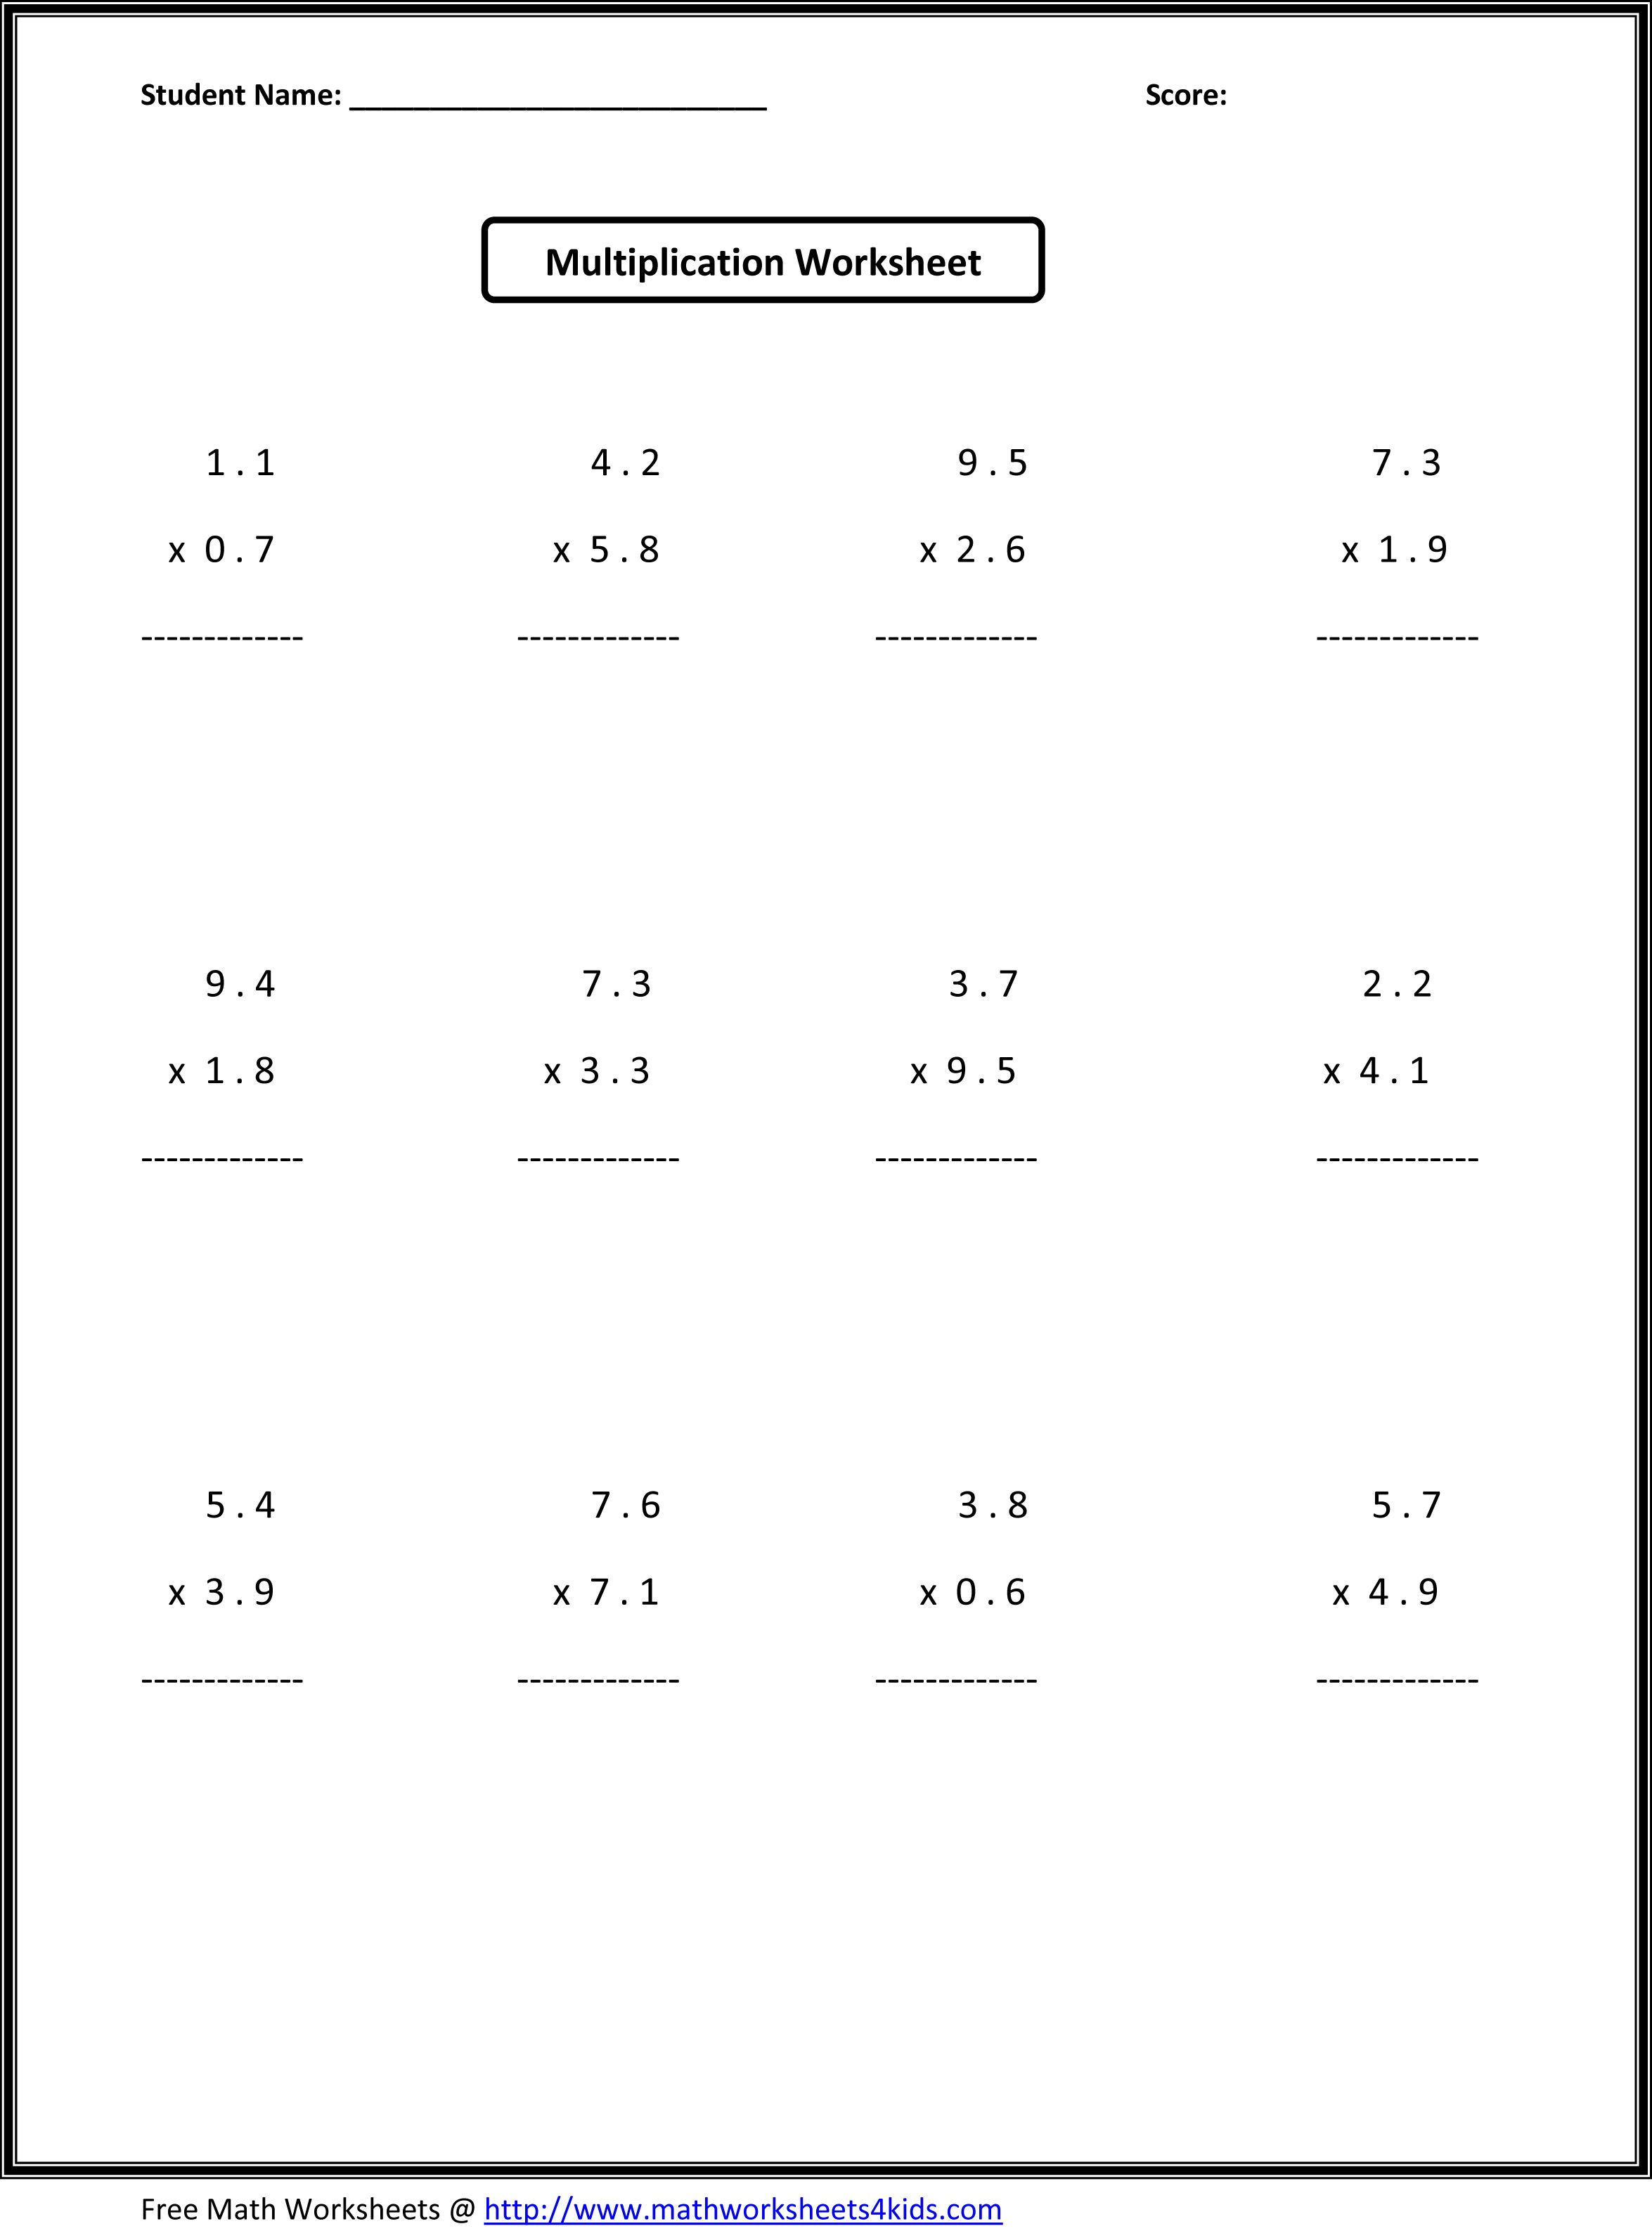 Worksheets Math Worksheets For Sixth Grade 7th grade math worksheets value absolute sixth worksheets